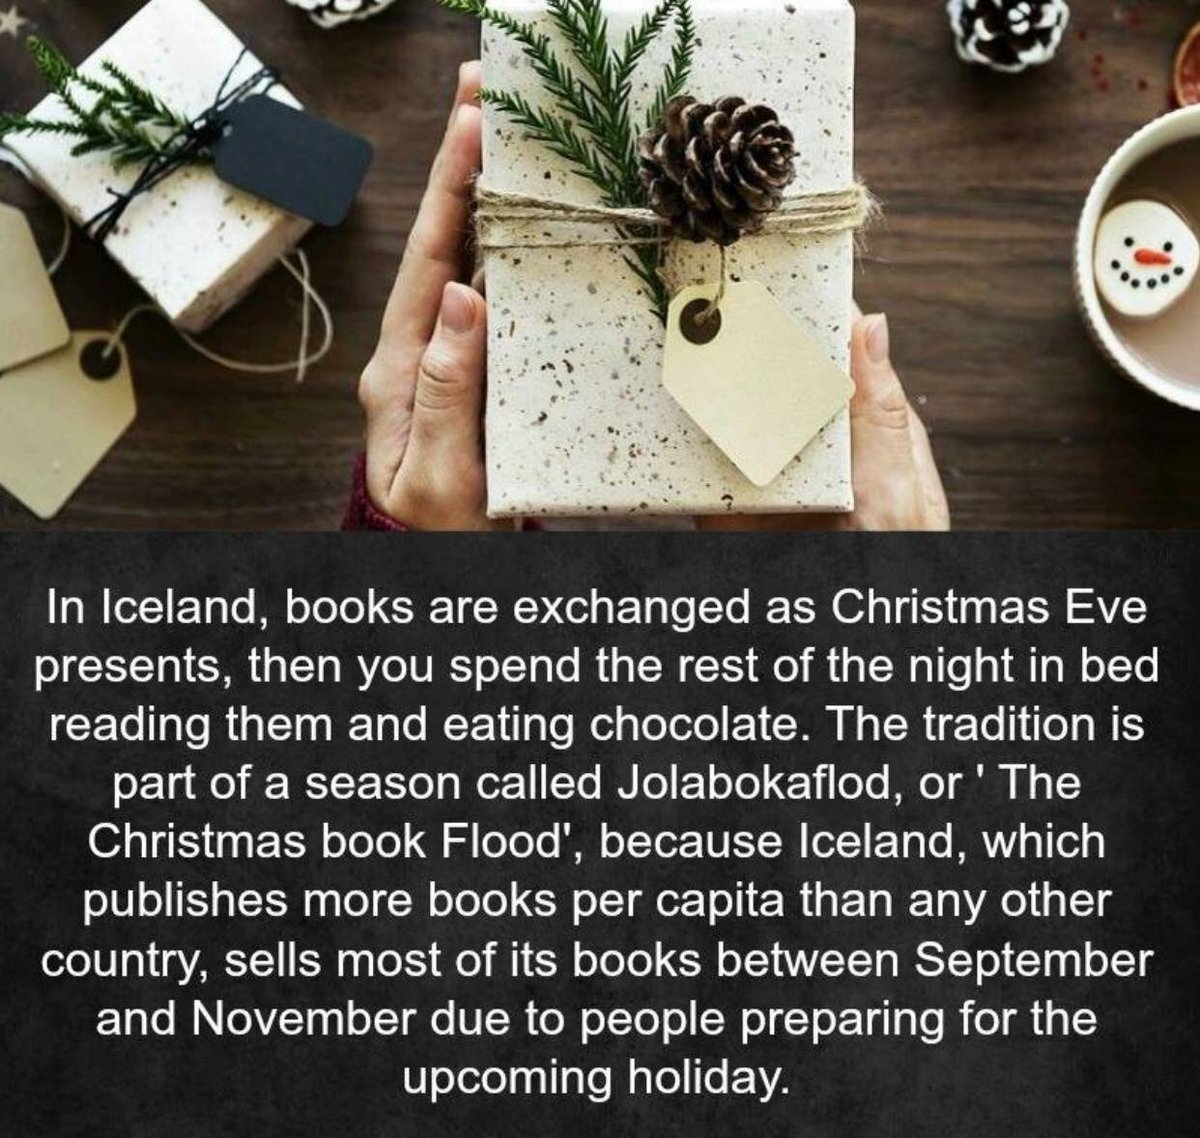 Who's ready to start this tradition? #booklover #booklovers #bookloversclub #bookloversunite #booklover #bookloverscoffee #bookloversday #bookloverproblems #booklovergift #booklovergifts #bookloversdream #bookgifts #gifts #giftstore #giftideas #giftsph #giftshop #gifts<br>http://pic.twitter.com/UR0fs0n1ia